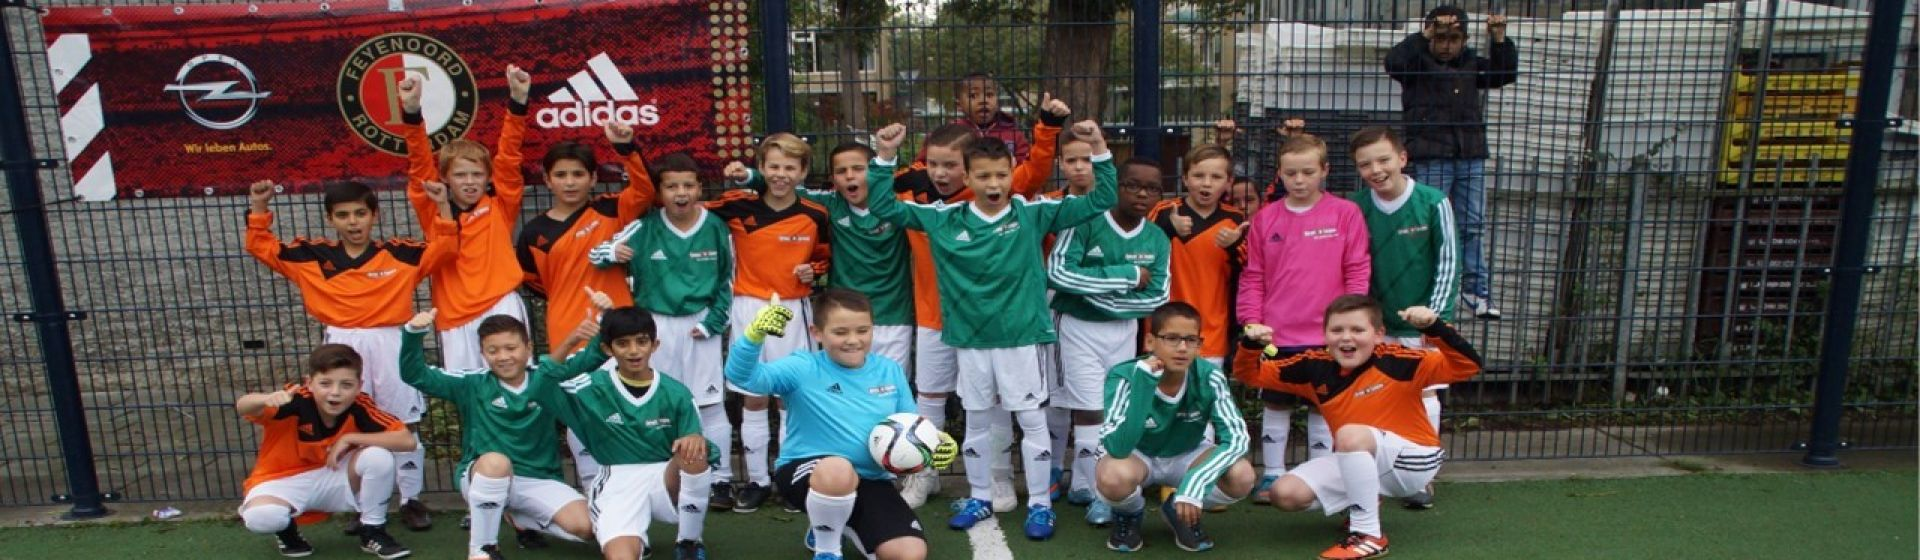 Community Champions League European Football For